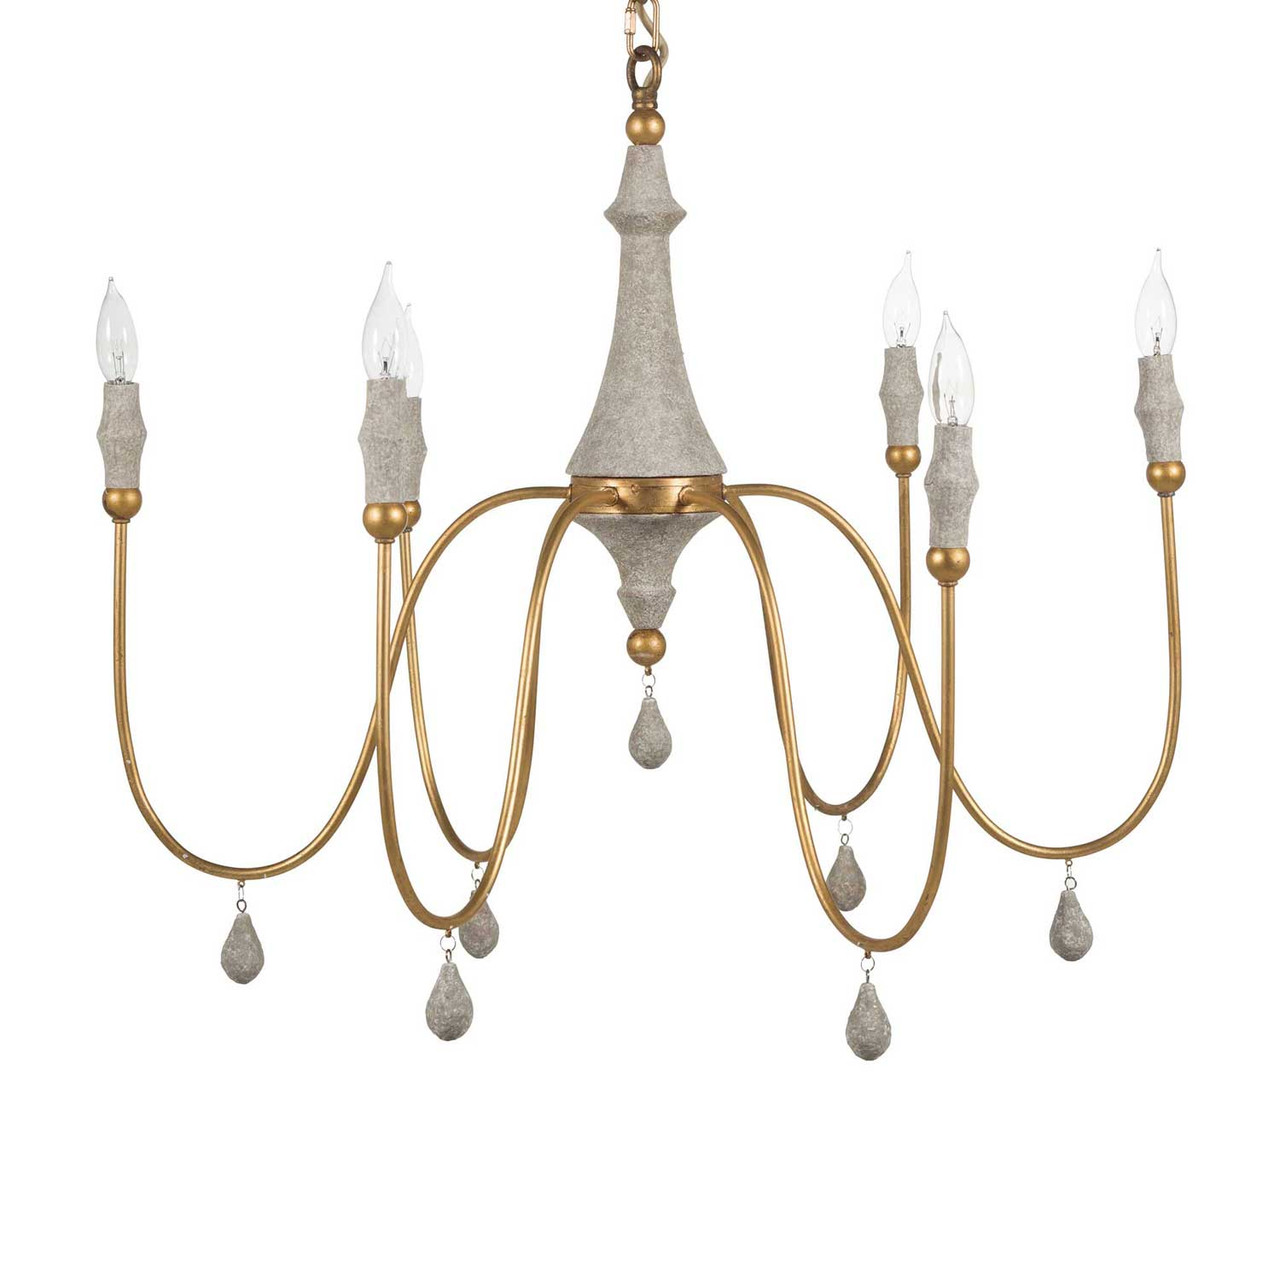 Clay Small Chandelier in Gold